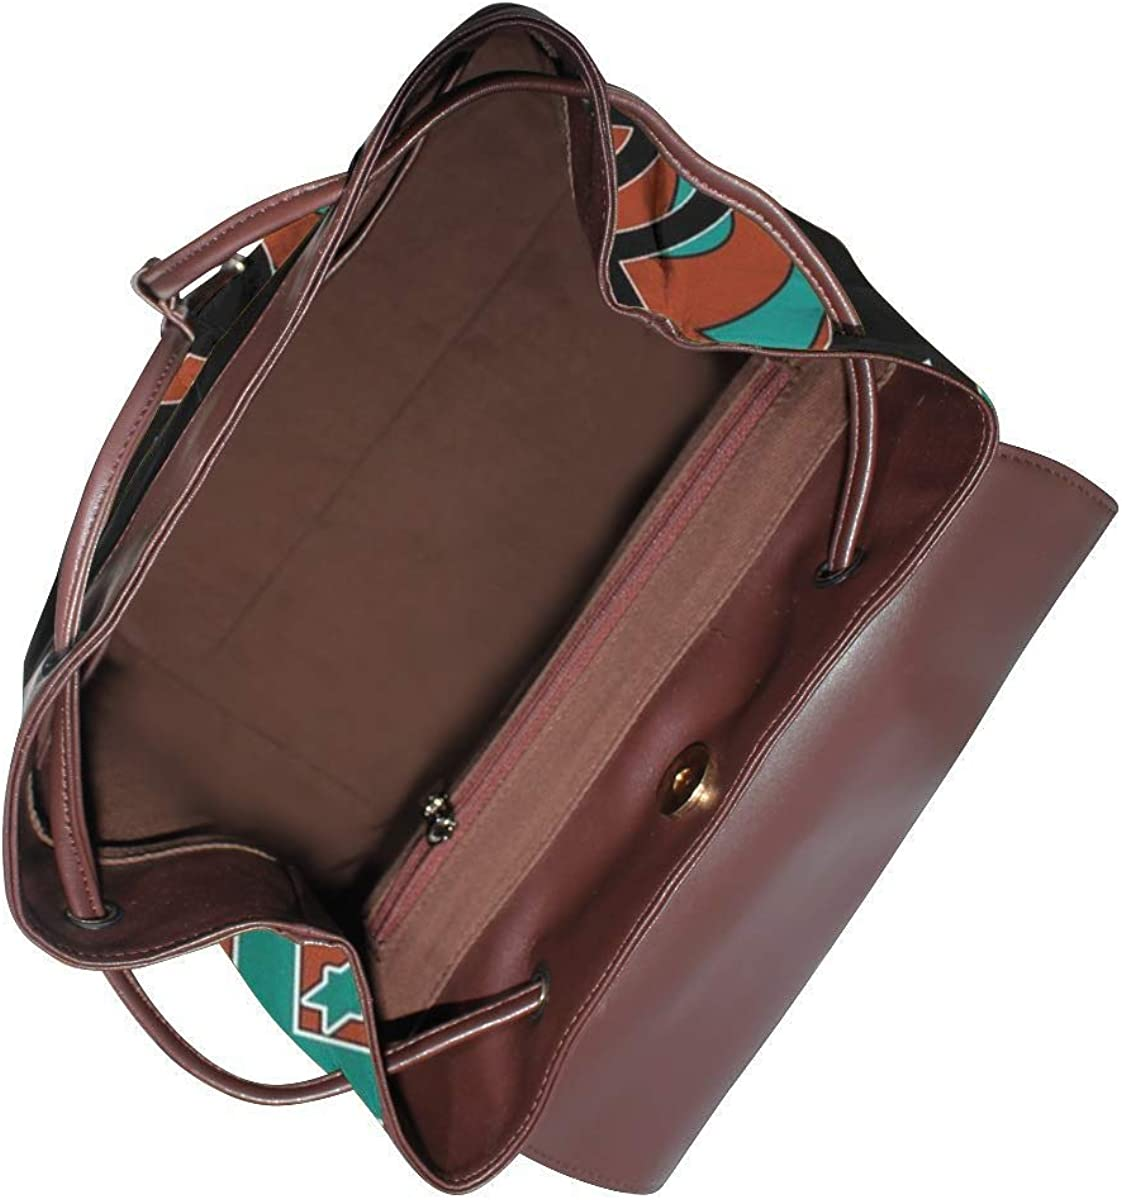 Native American Indian Southwest Women Soft Leather Shoulder Bags for Travel School Office